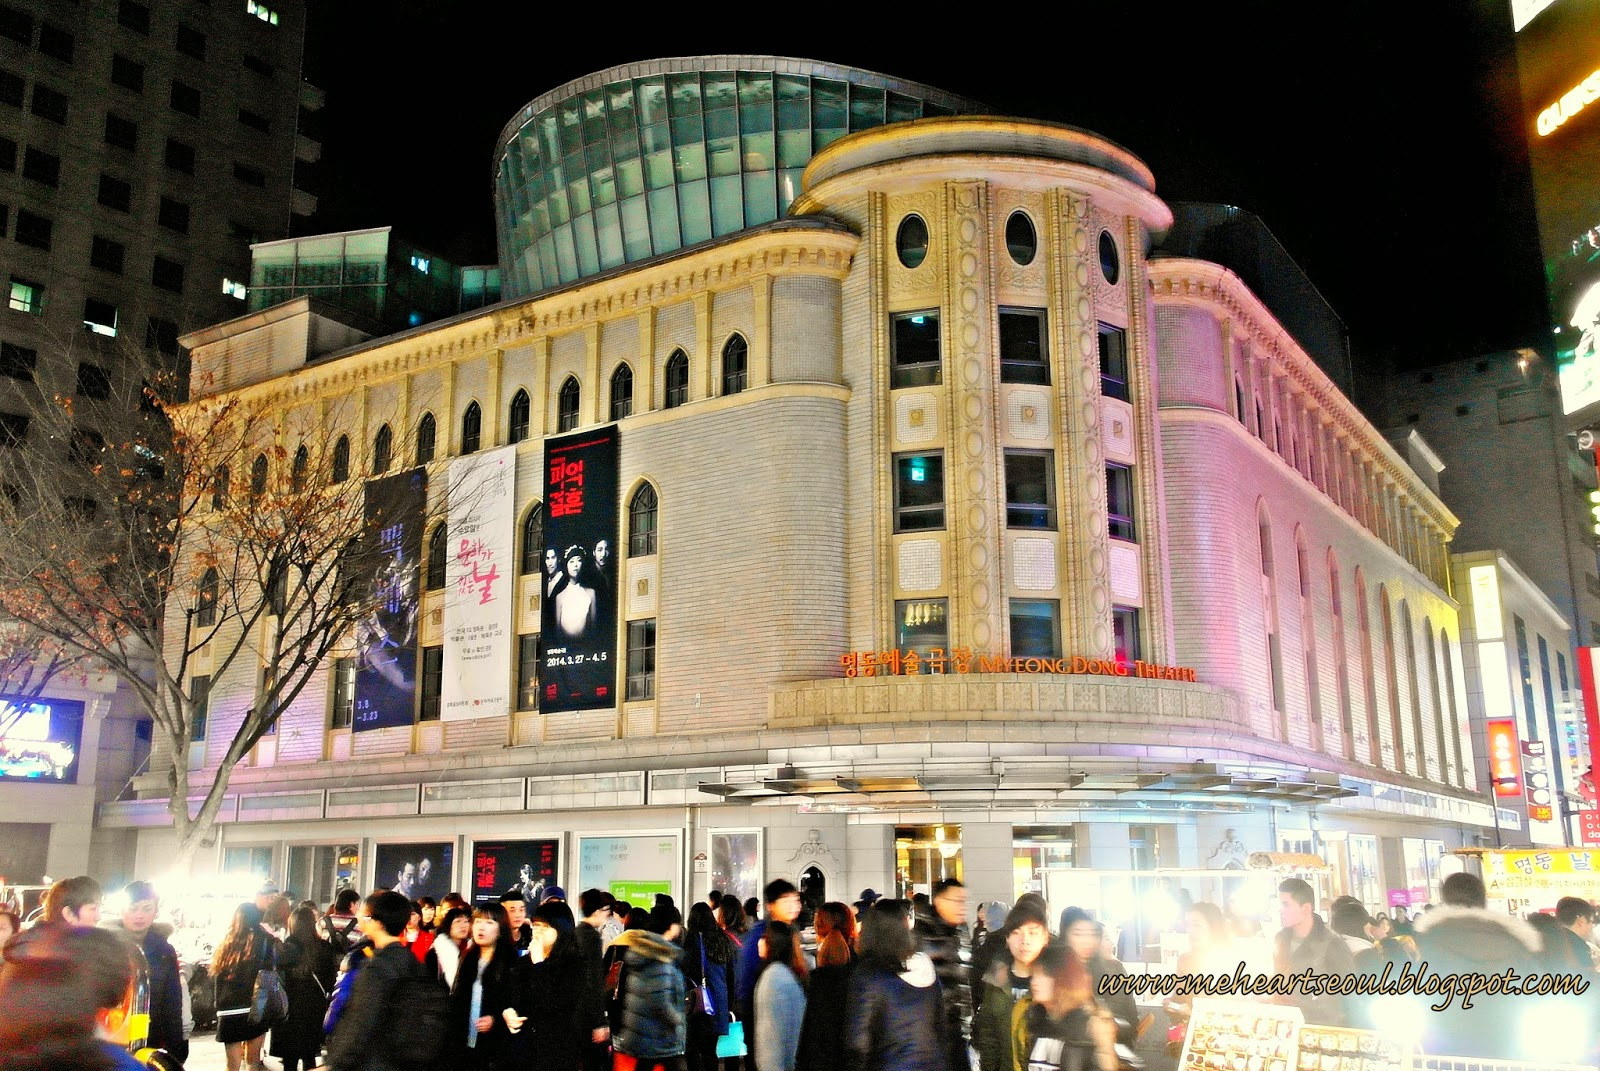 Recommended shopping spot in Seoul: Myeongdong | meheartsoul.blogspot.com